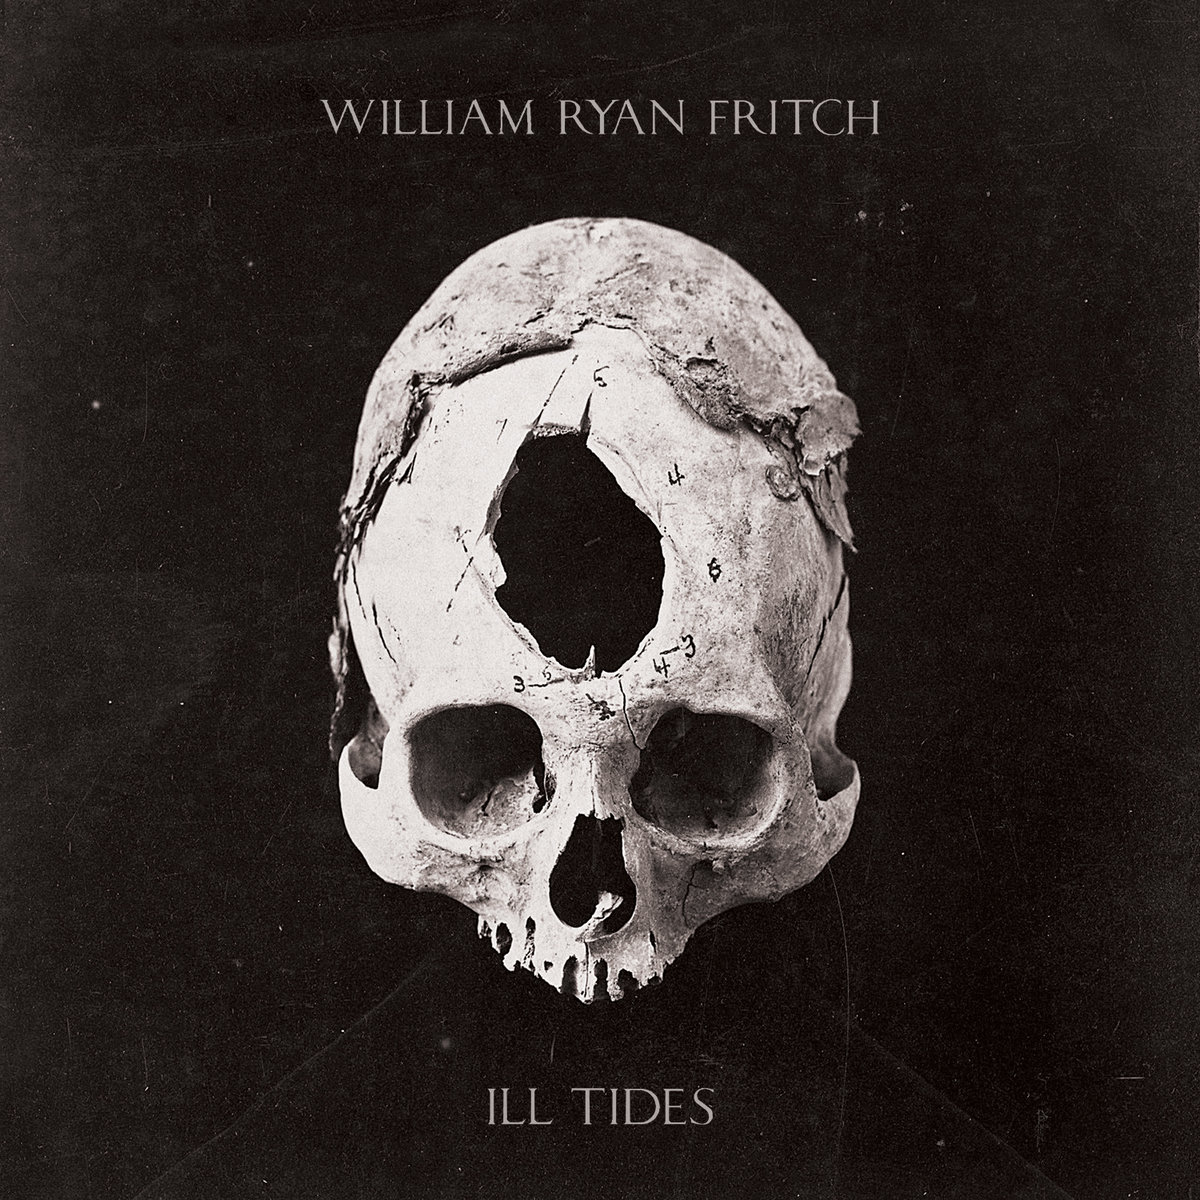 William Ryan Fritch ill tides album art